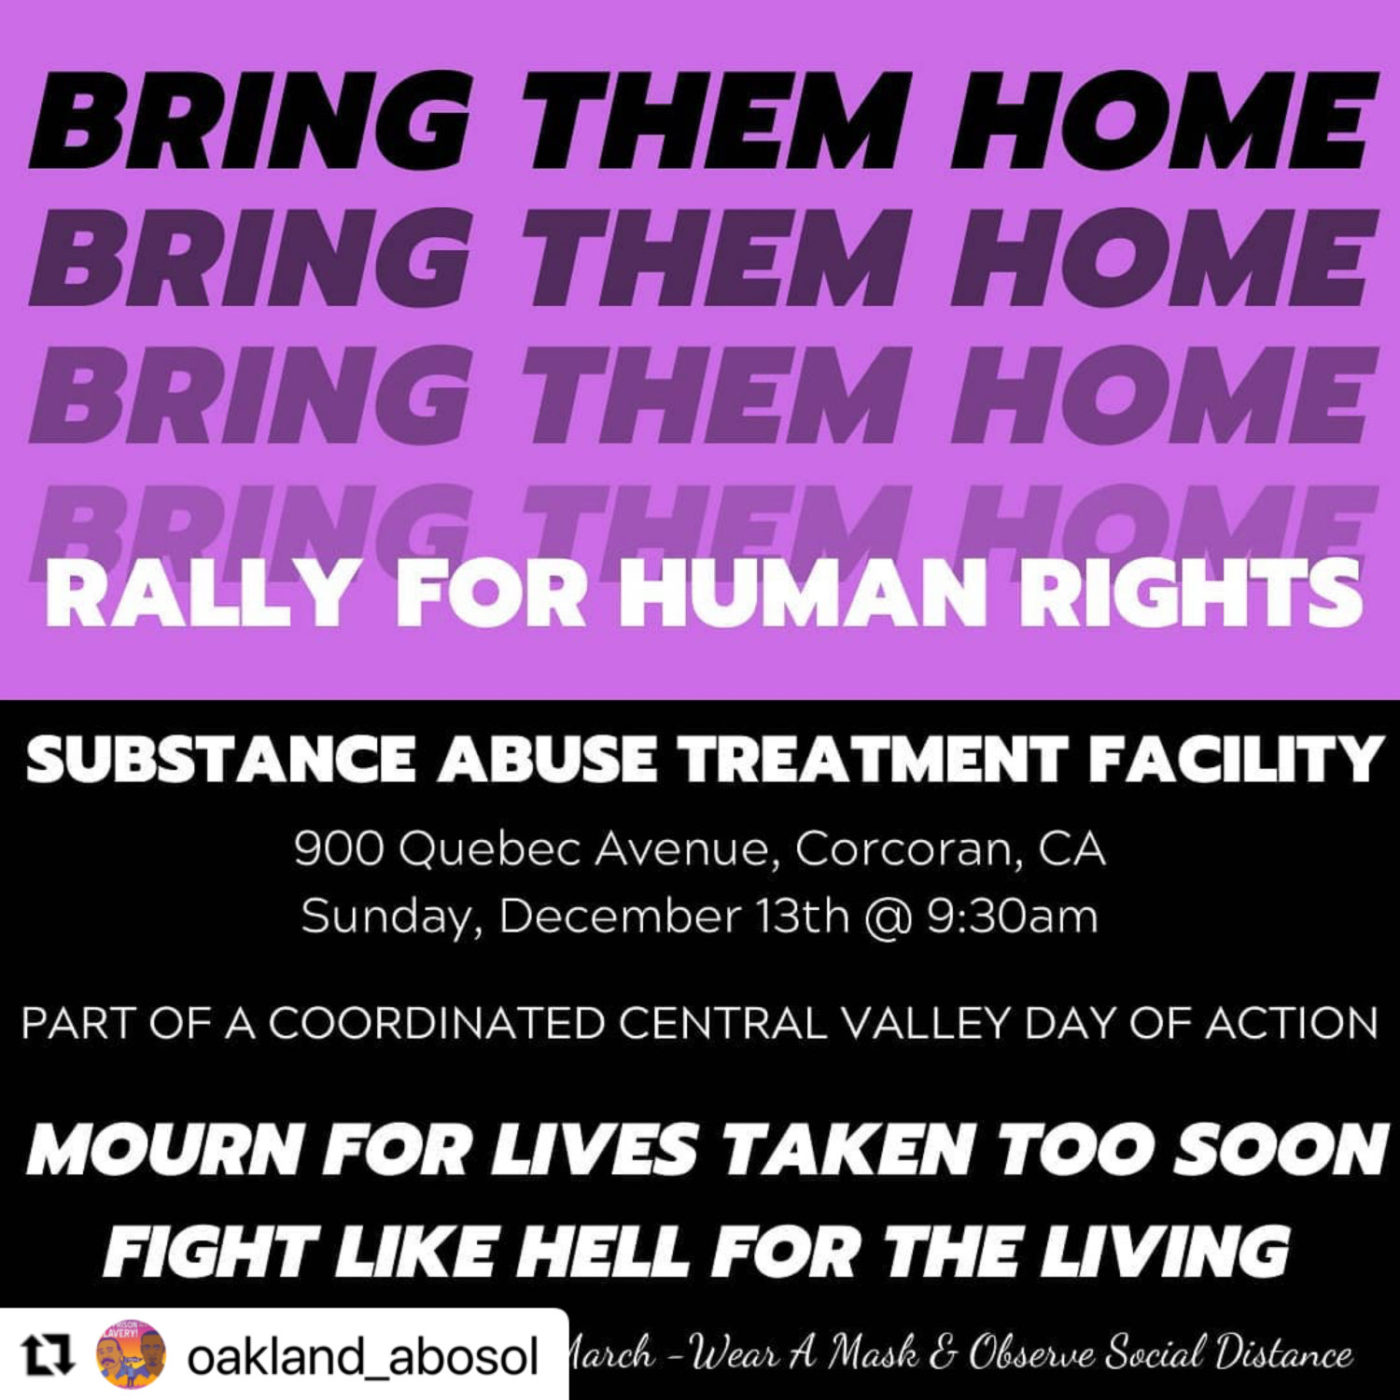 Bring-Them-Home-Rally-for-Human-Rights-flier-by-ABOSOL-1400x1400, 'They want us to get COVID; they don't care who dies': Prisoners' families stage Central Valley-wide protest Sunday, Dec. 13, Behind Enemy Lines